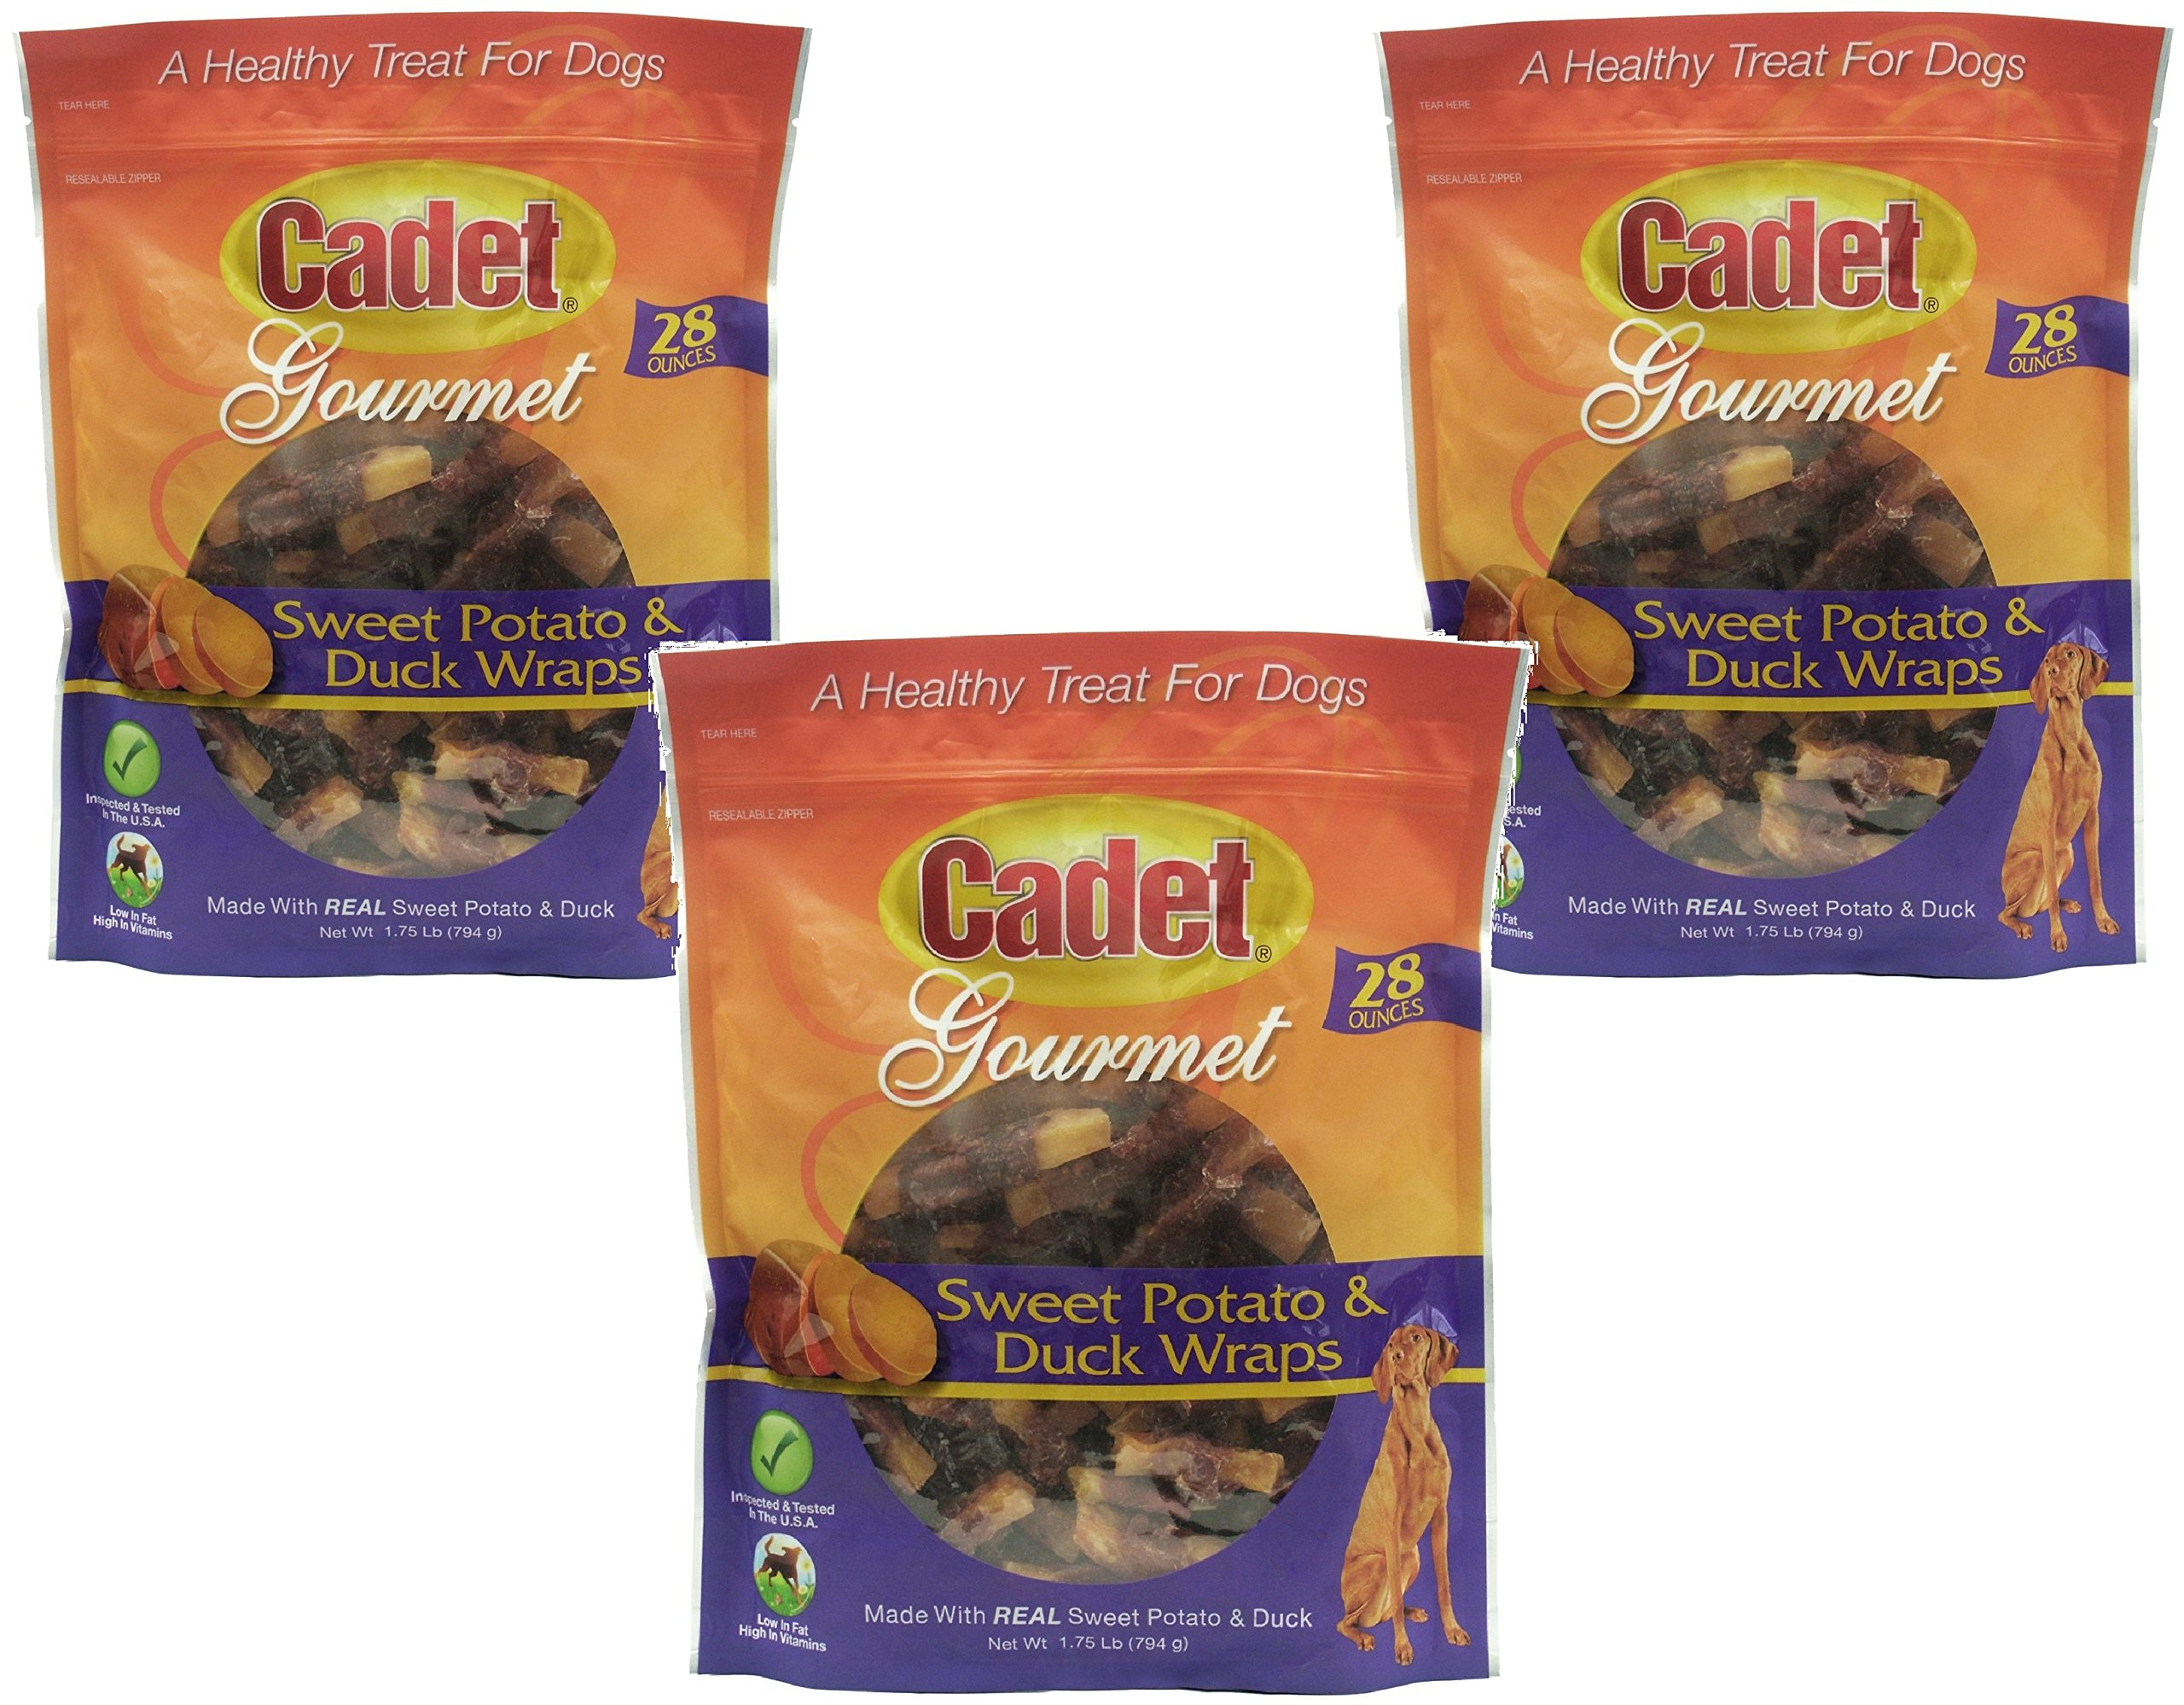 (3 Pack) Cadet Duck and Sweet Potato Dog Treat Wraps, 28 Ounces each by Cadet